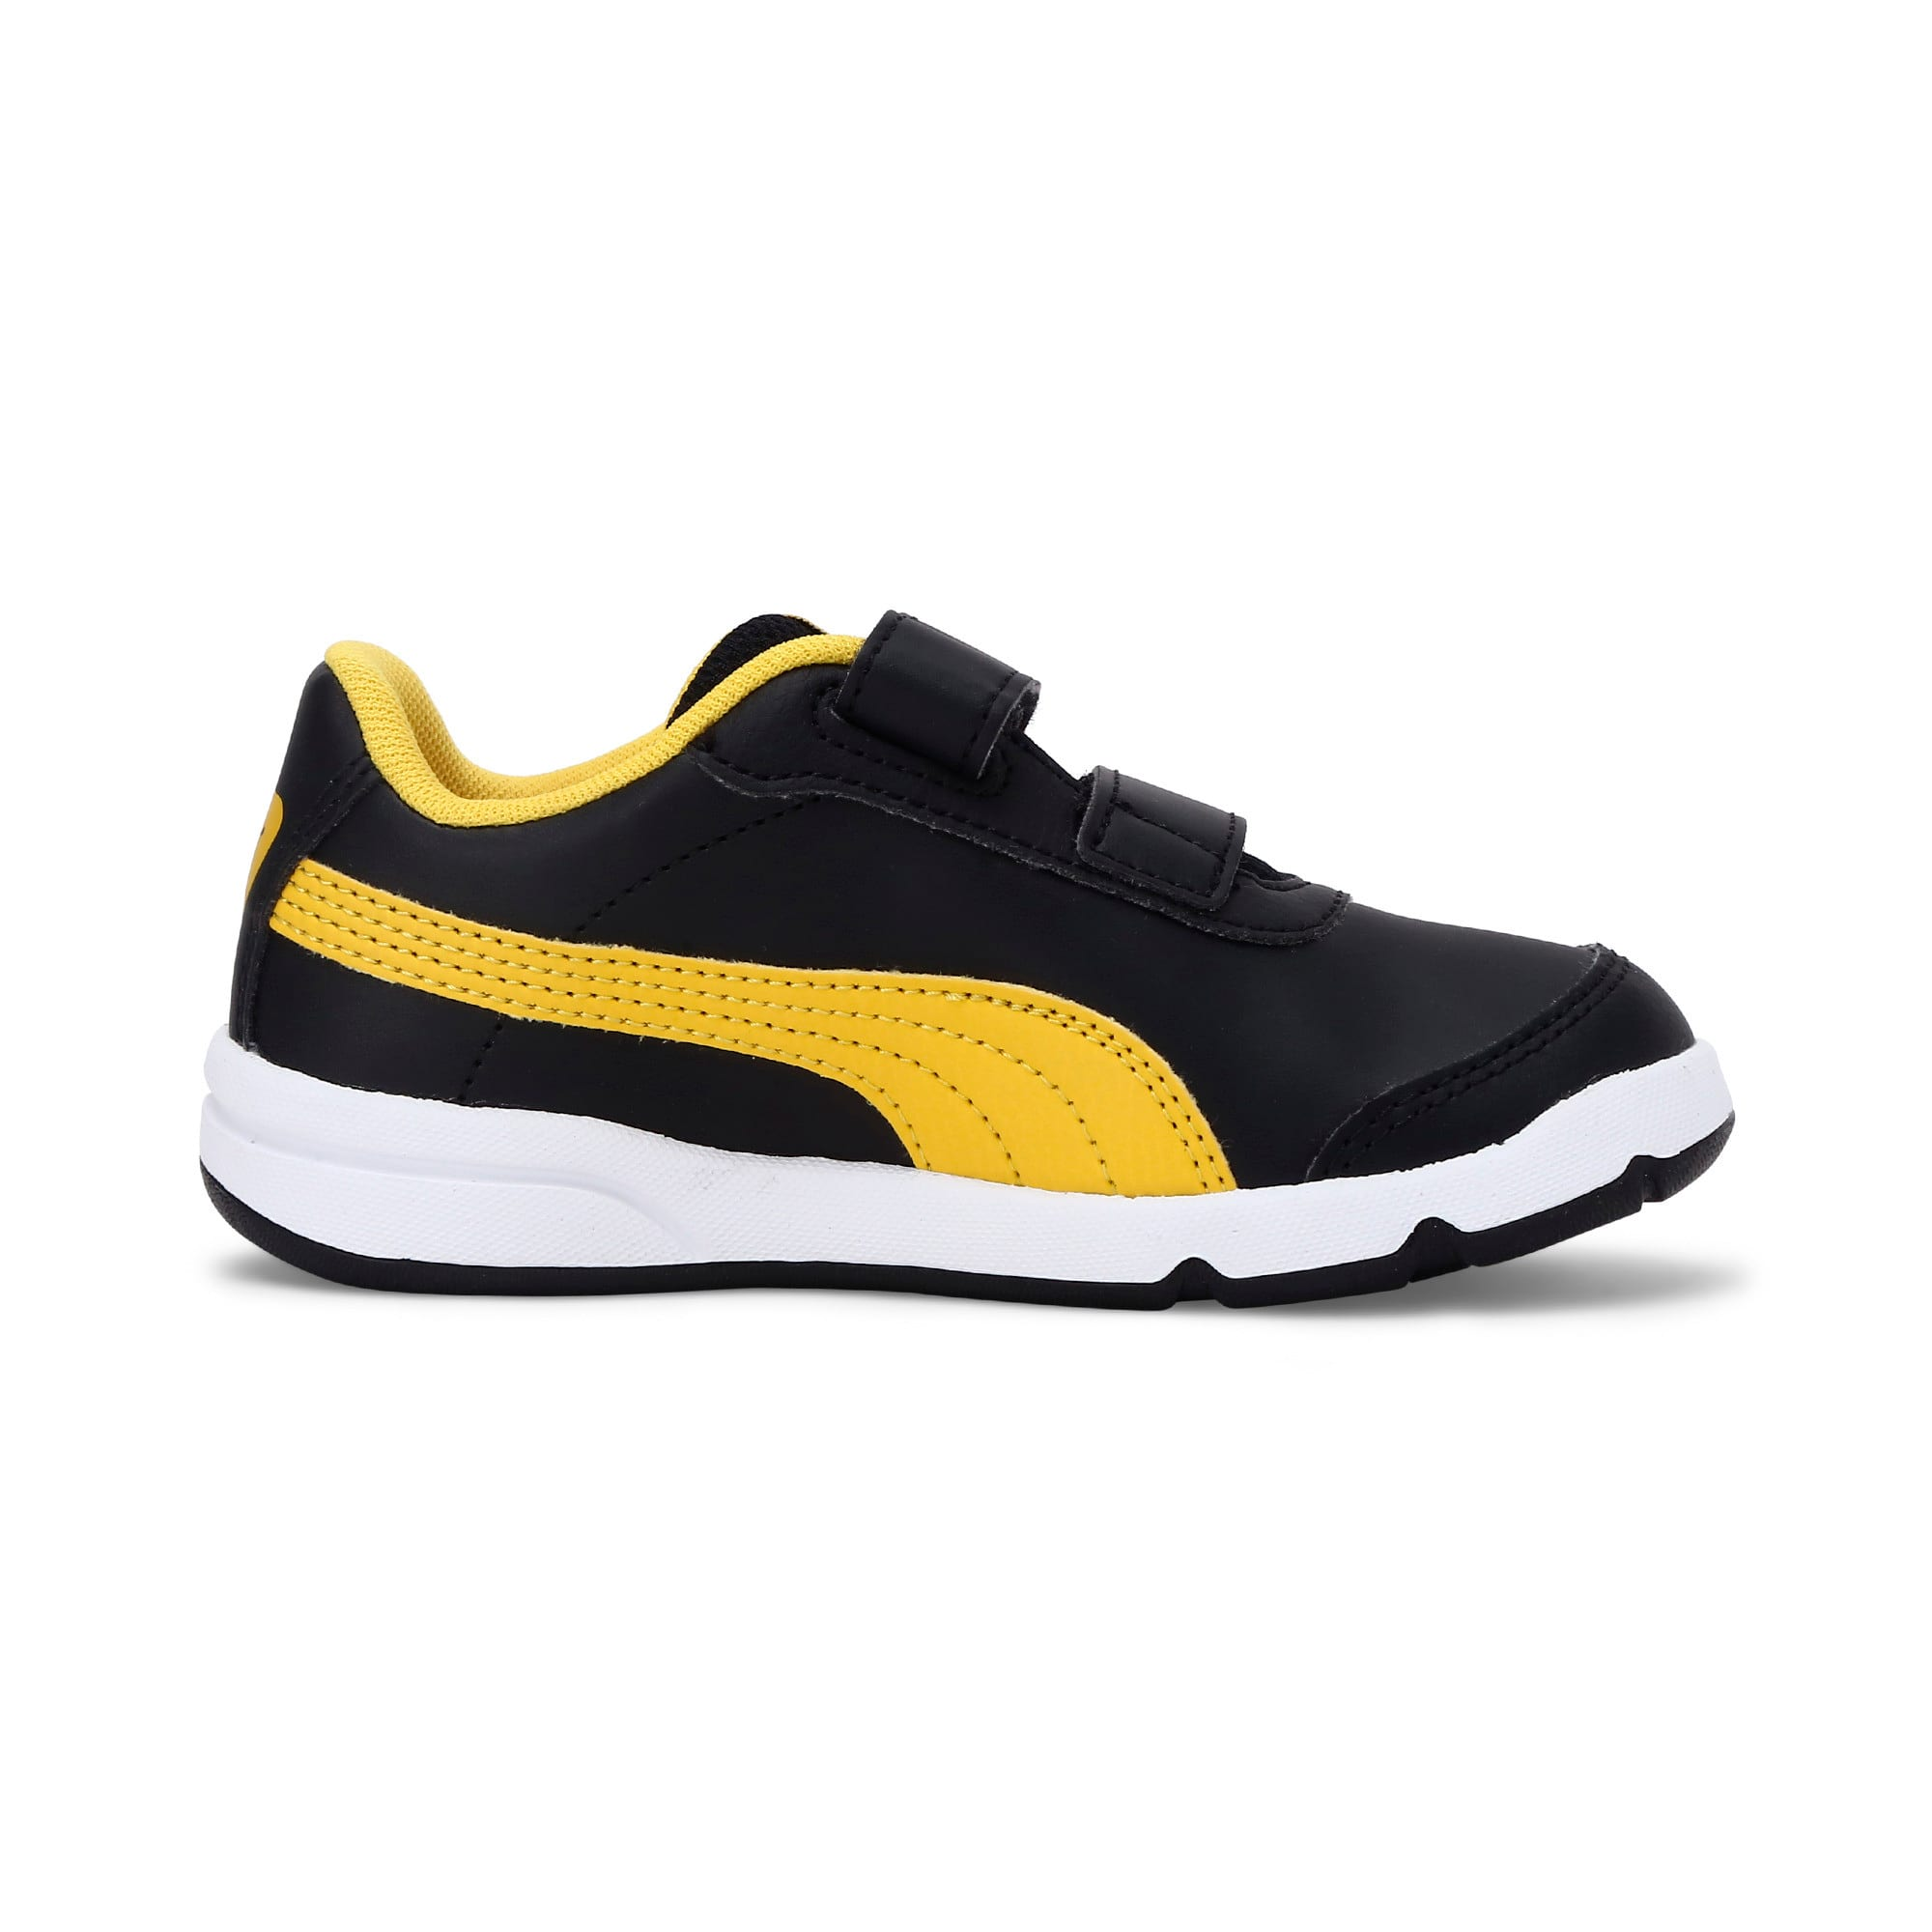 Thumbnail 5 of Stepfleex 2 SL VE V Kids' Trainers, Puma Black-Sulphur-White, medium-IND